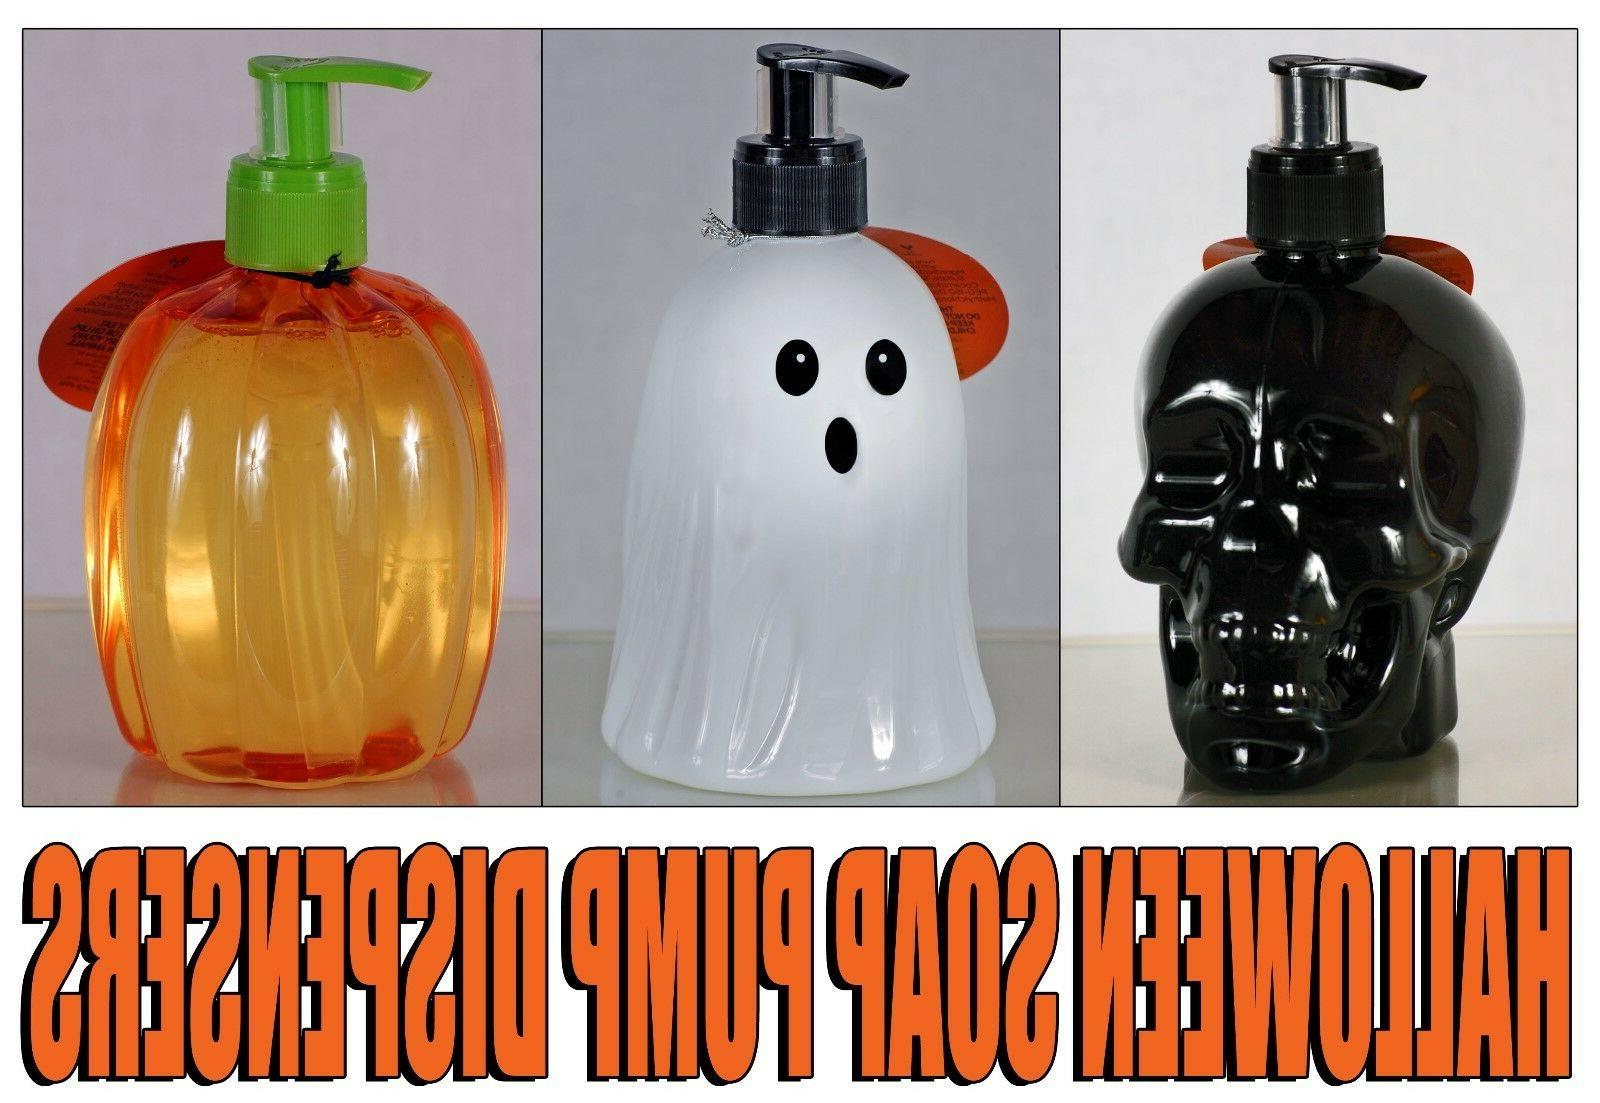 Sealed NEW Simple Pleasures Hand Soap Refillable Pump Dispensers Halloween